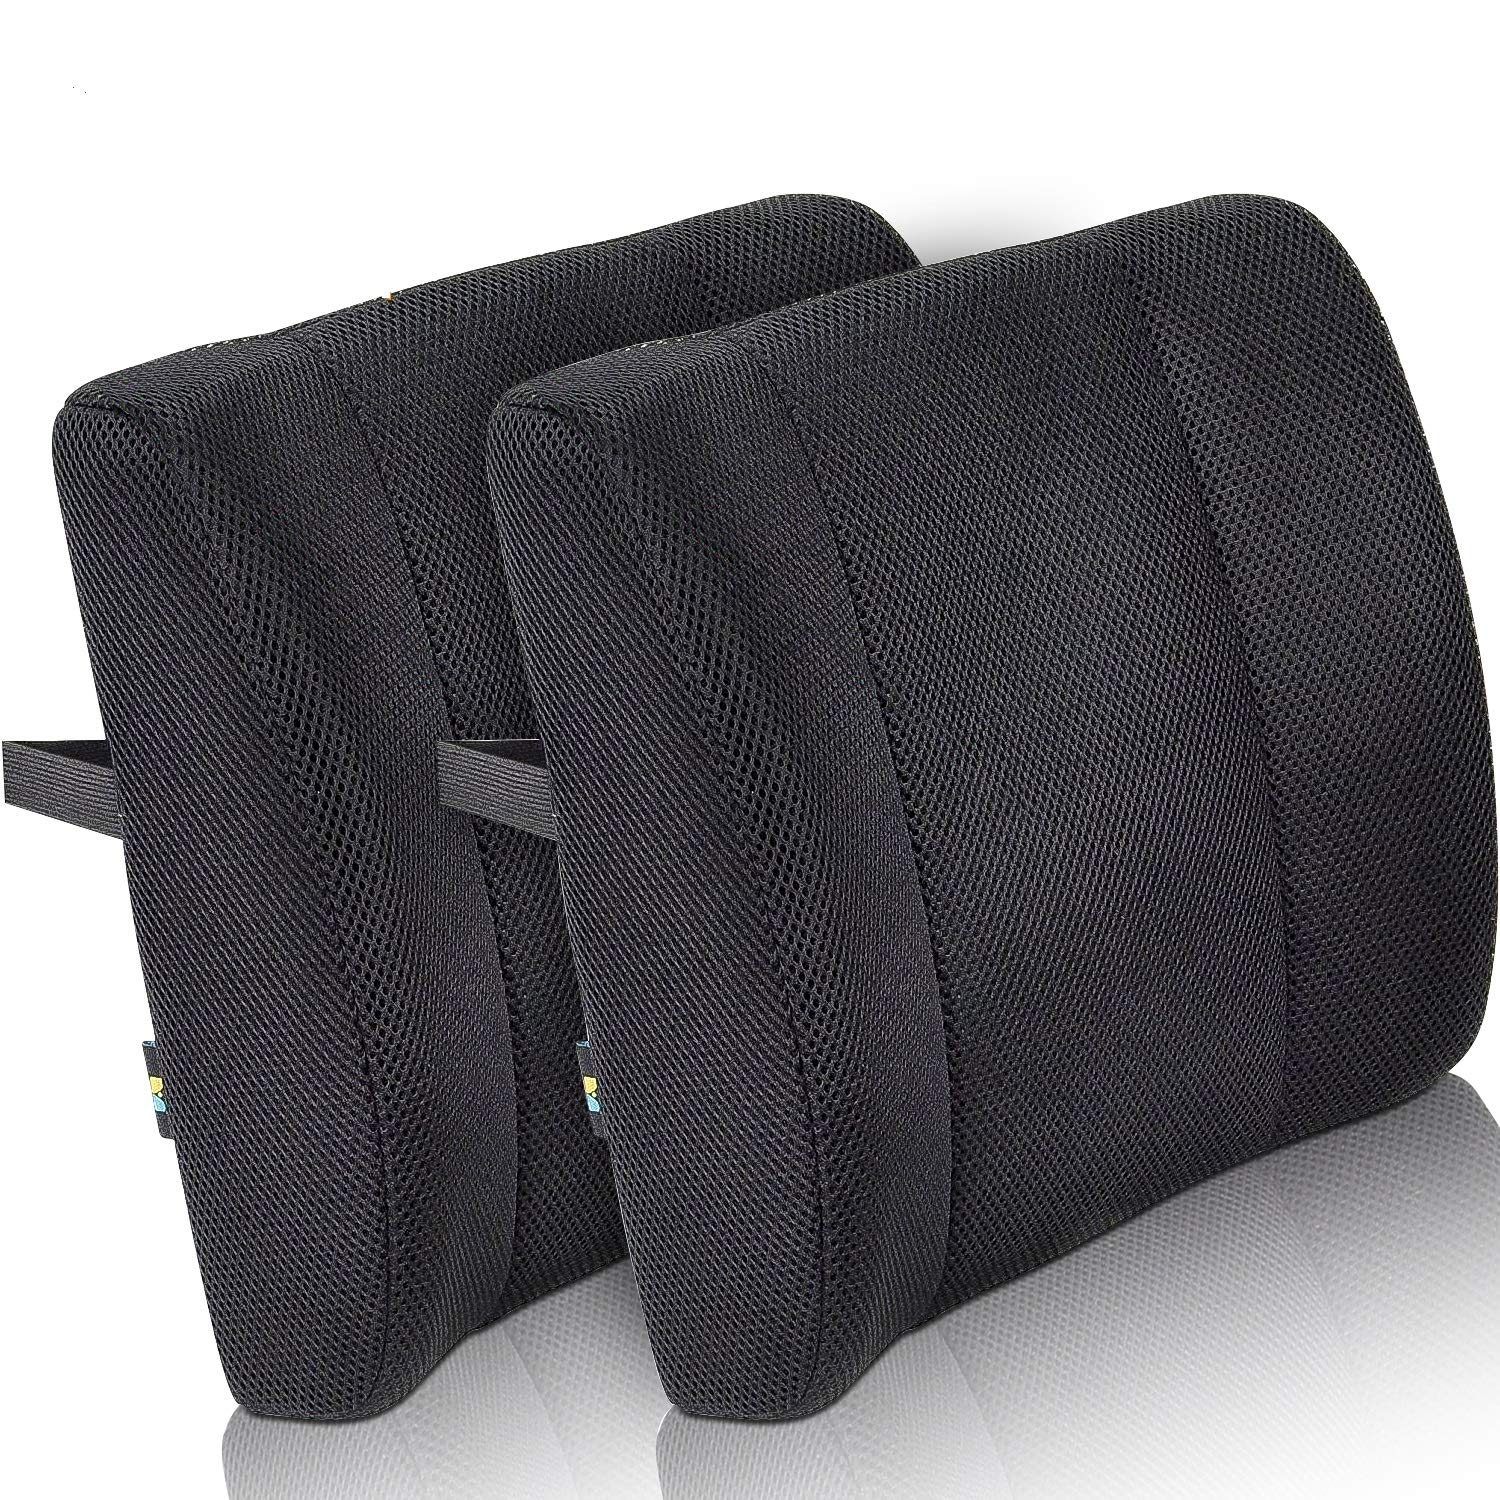 2 Pack of Lumbar Support Pillow with Cool Ventilation Technology, and Clip to Strap to The Chair, Sciatica and Pain Relief (Back Cushion) Viteps